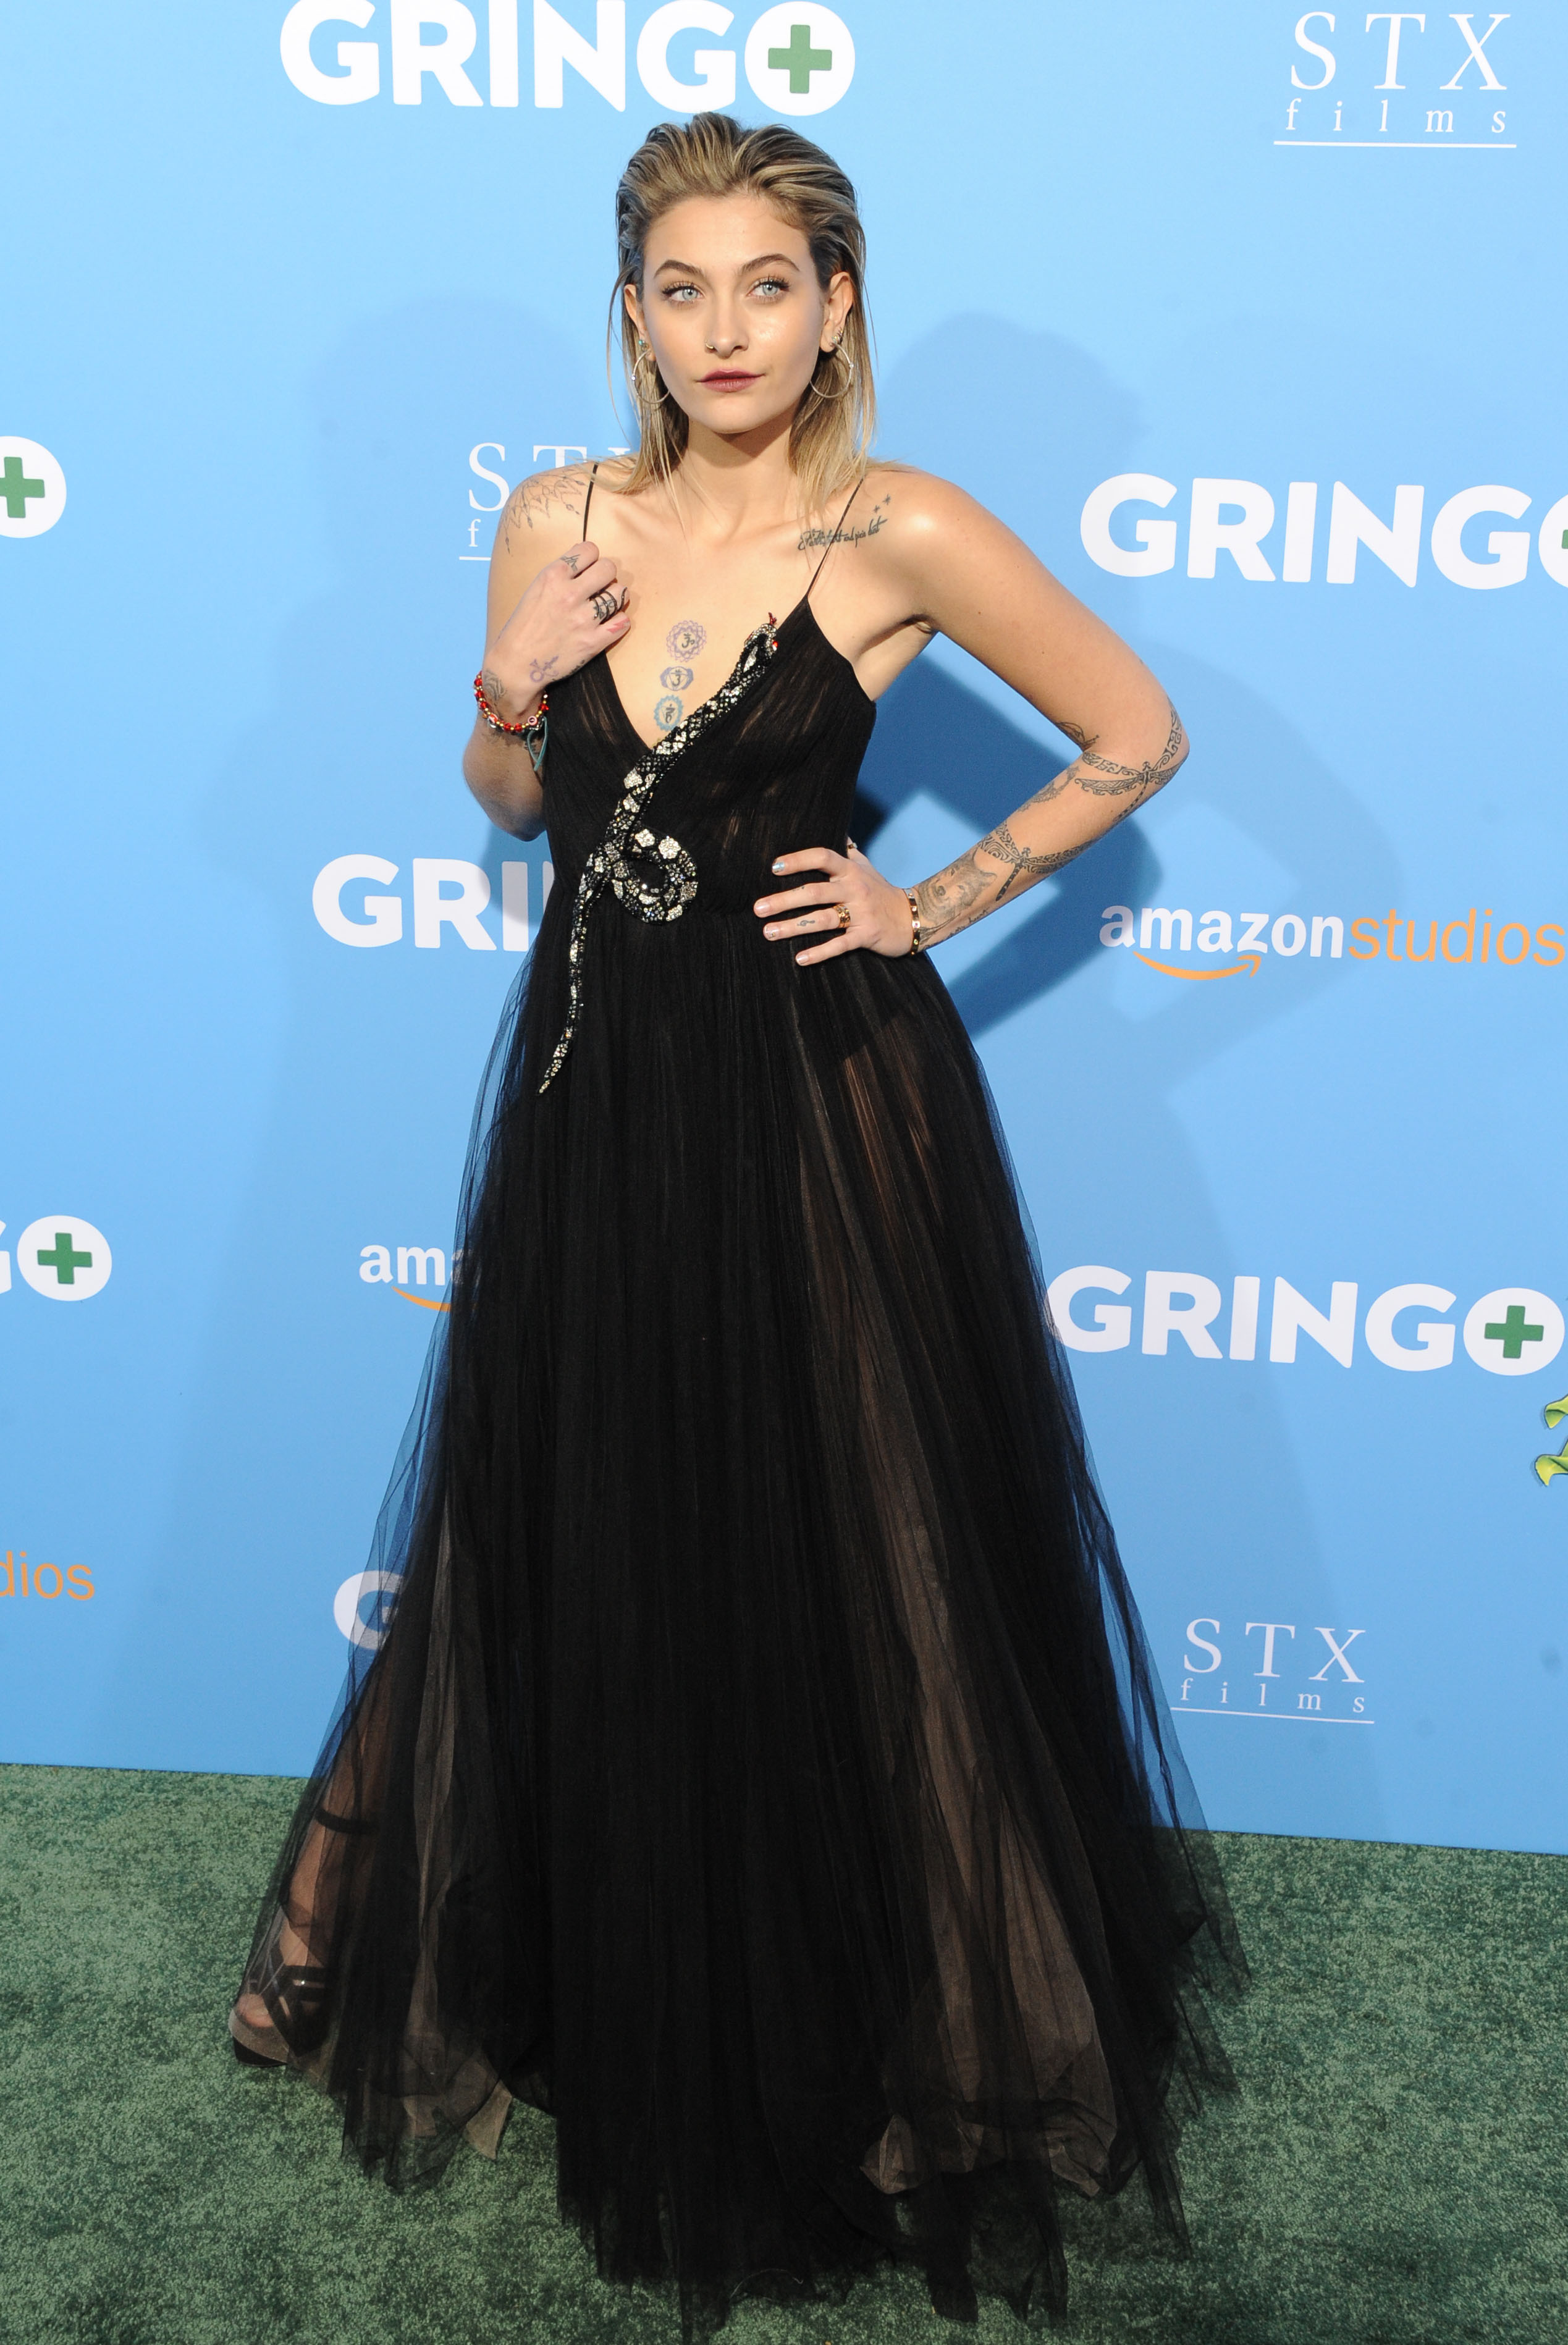 The Los Angeles Premiere of ''Gringo'' <P> Pictured: Paris Jackson <B>Ref: SPL1668724  070318  </B><BR/> Picture by: Zuma / Splash News<BR/> </P><P> <B>Splash News and Pictures</B><BR/> Los Angeles:310-821-2666<BR/> New York:212-619-2666<BR/> London:870-934-2666<BR/> <span id=